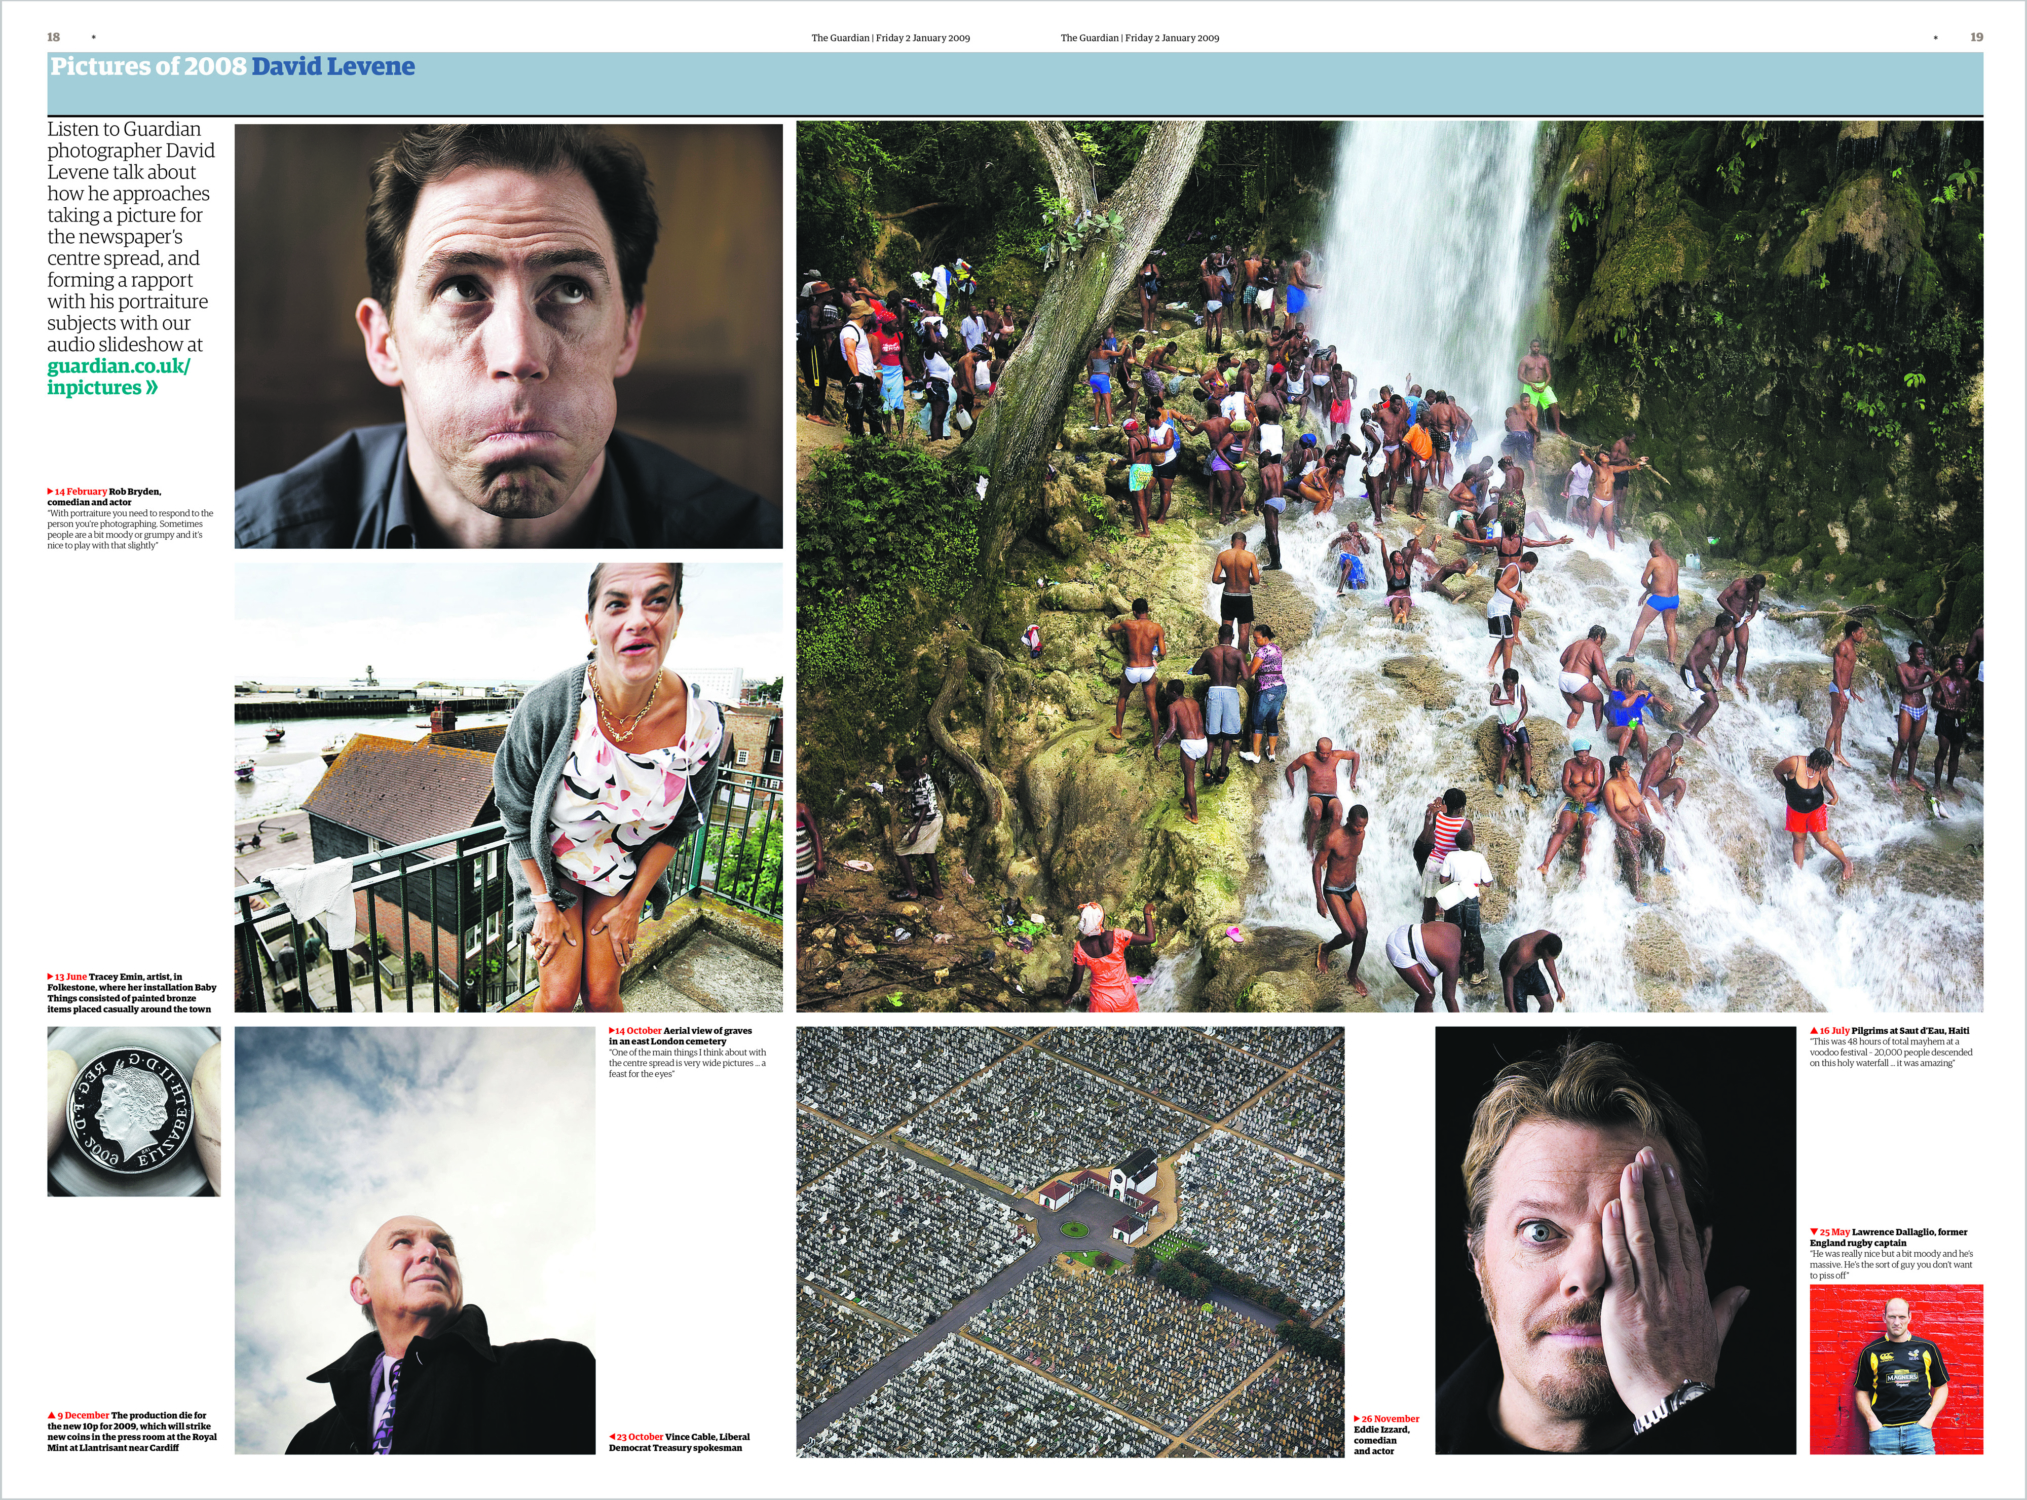 David Levene's best photographs from 2008